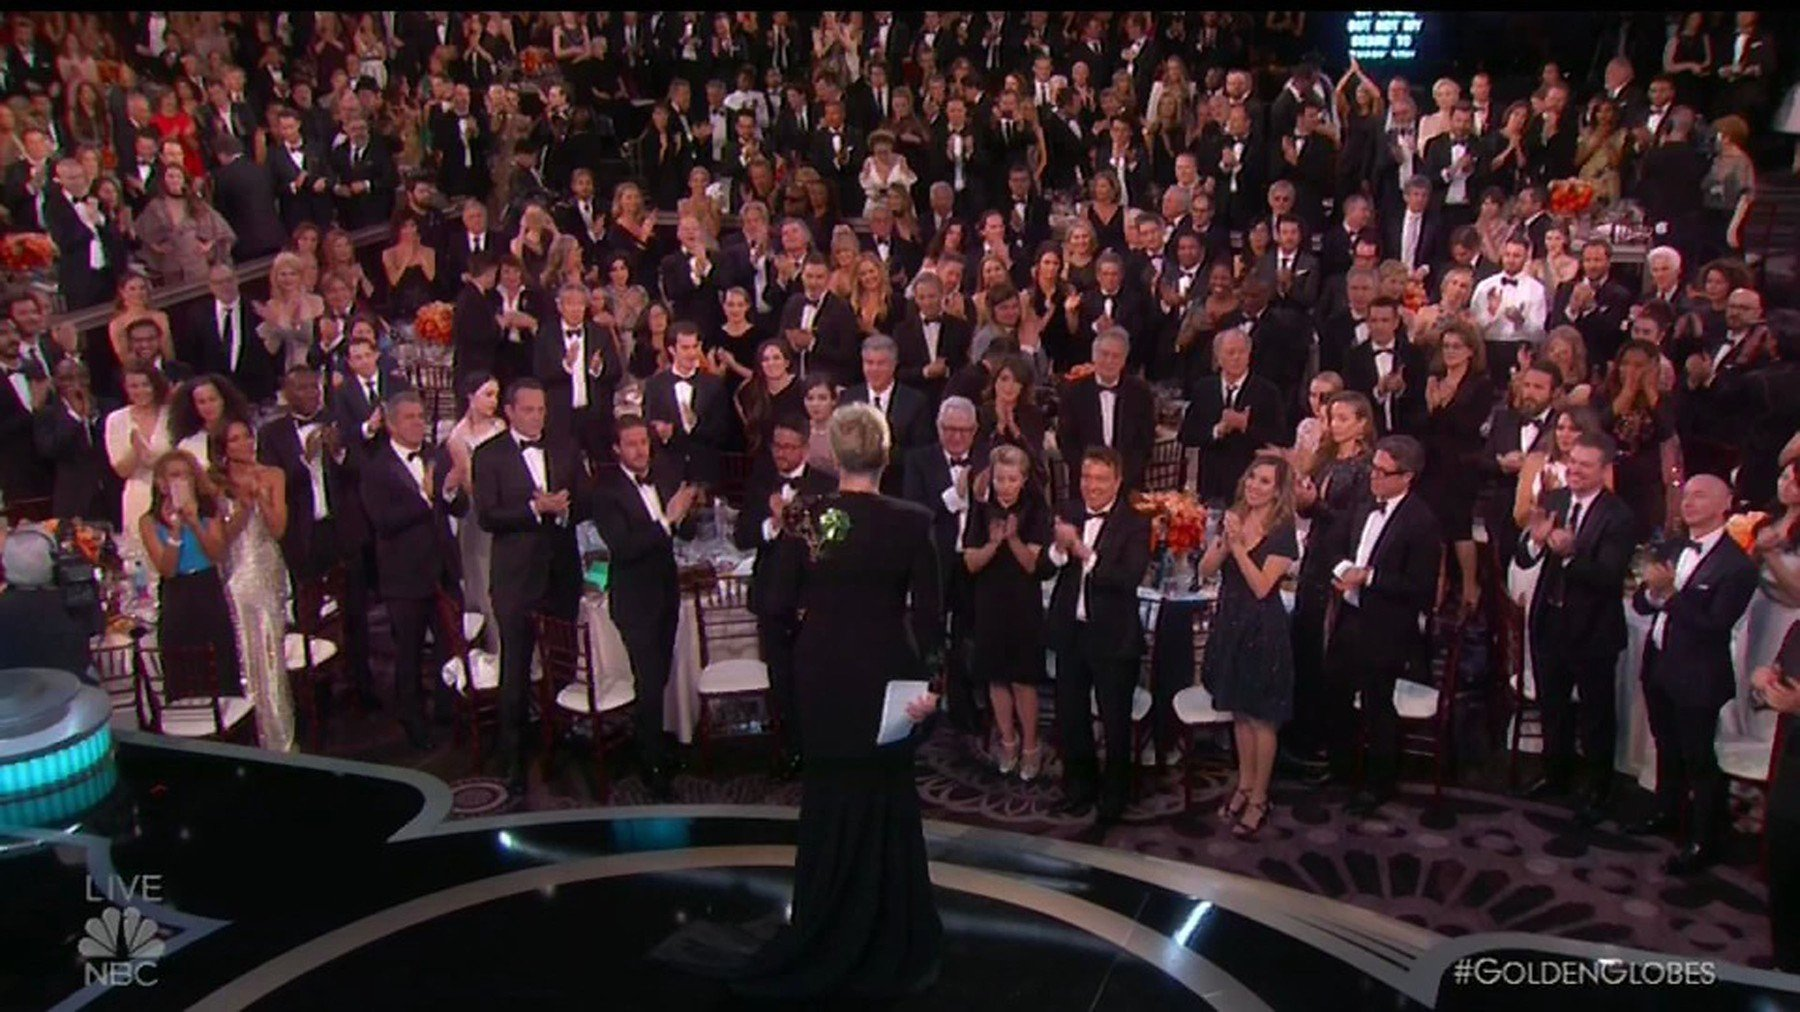 8 January 2017 - Los Angeles - USA  **** STRICTLY NOT AVAILABLE FOR USA ***  Meryl Streep fights back tears as she rips into 'bully' Donald Trump and his impersonation of a disabled reporter in speech that stuns the Golden Globe Awards. Streep used her acceptance speech to publicly slam President elect Donald Trump as she alluded to racism and disrespect. The Cecil B. DeMille honoree supplied the night's most striking rebuke to Trump, called the moment he mocked a disabled reporter the 'most stunning performance' of the year.